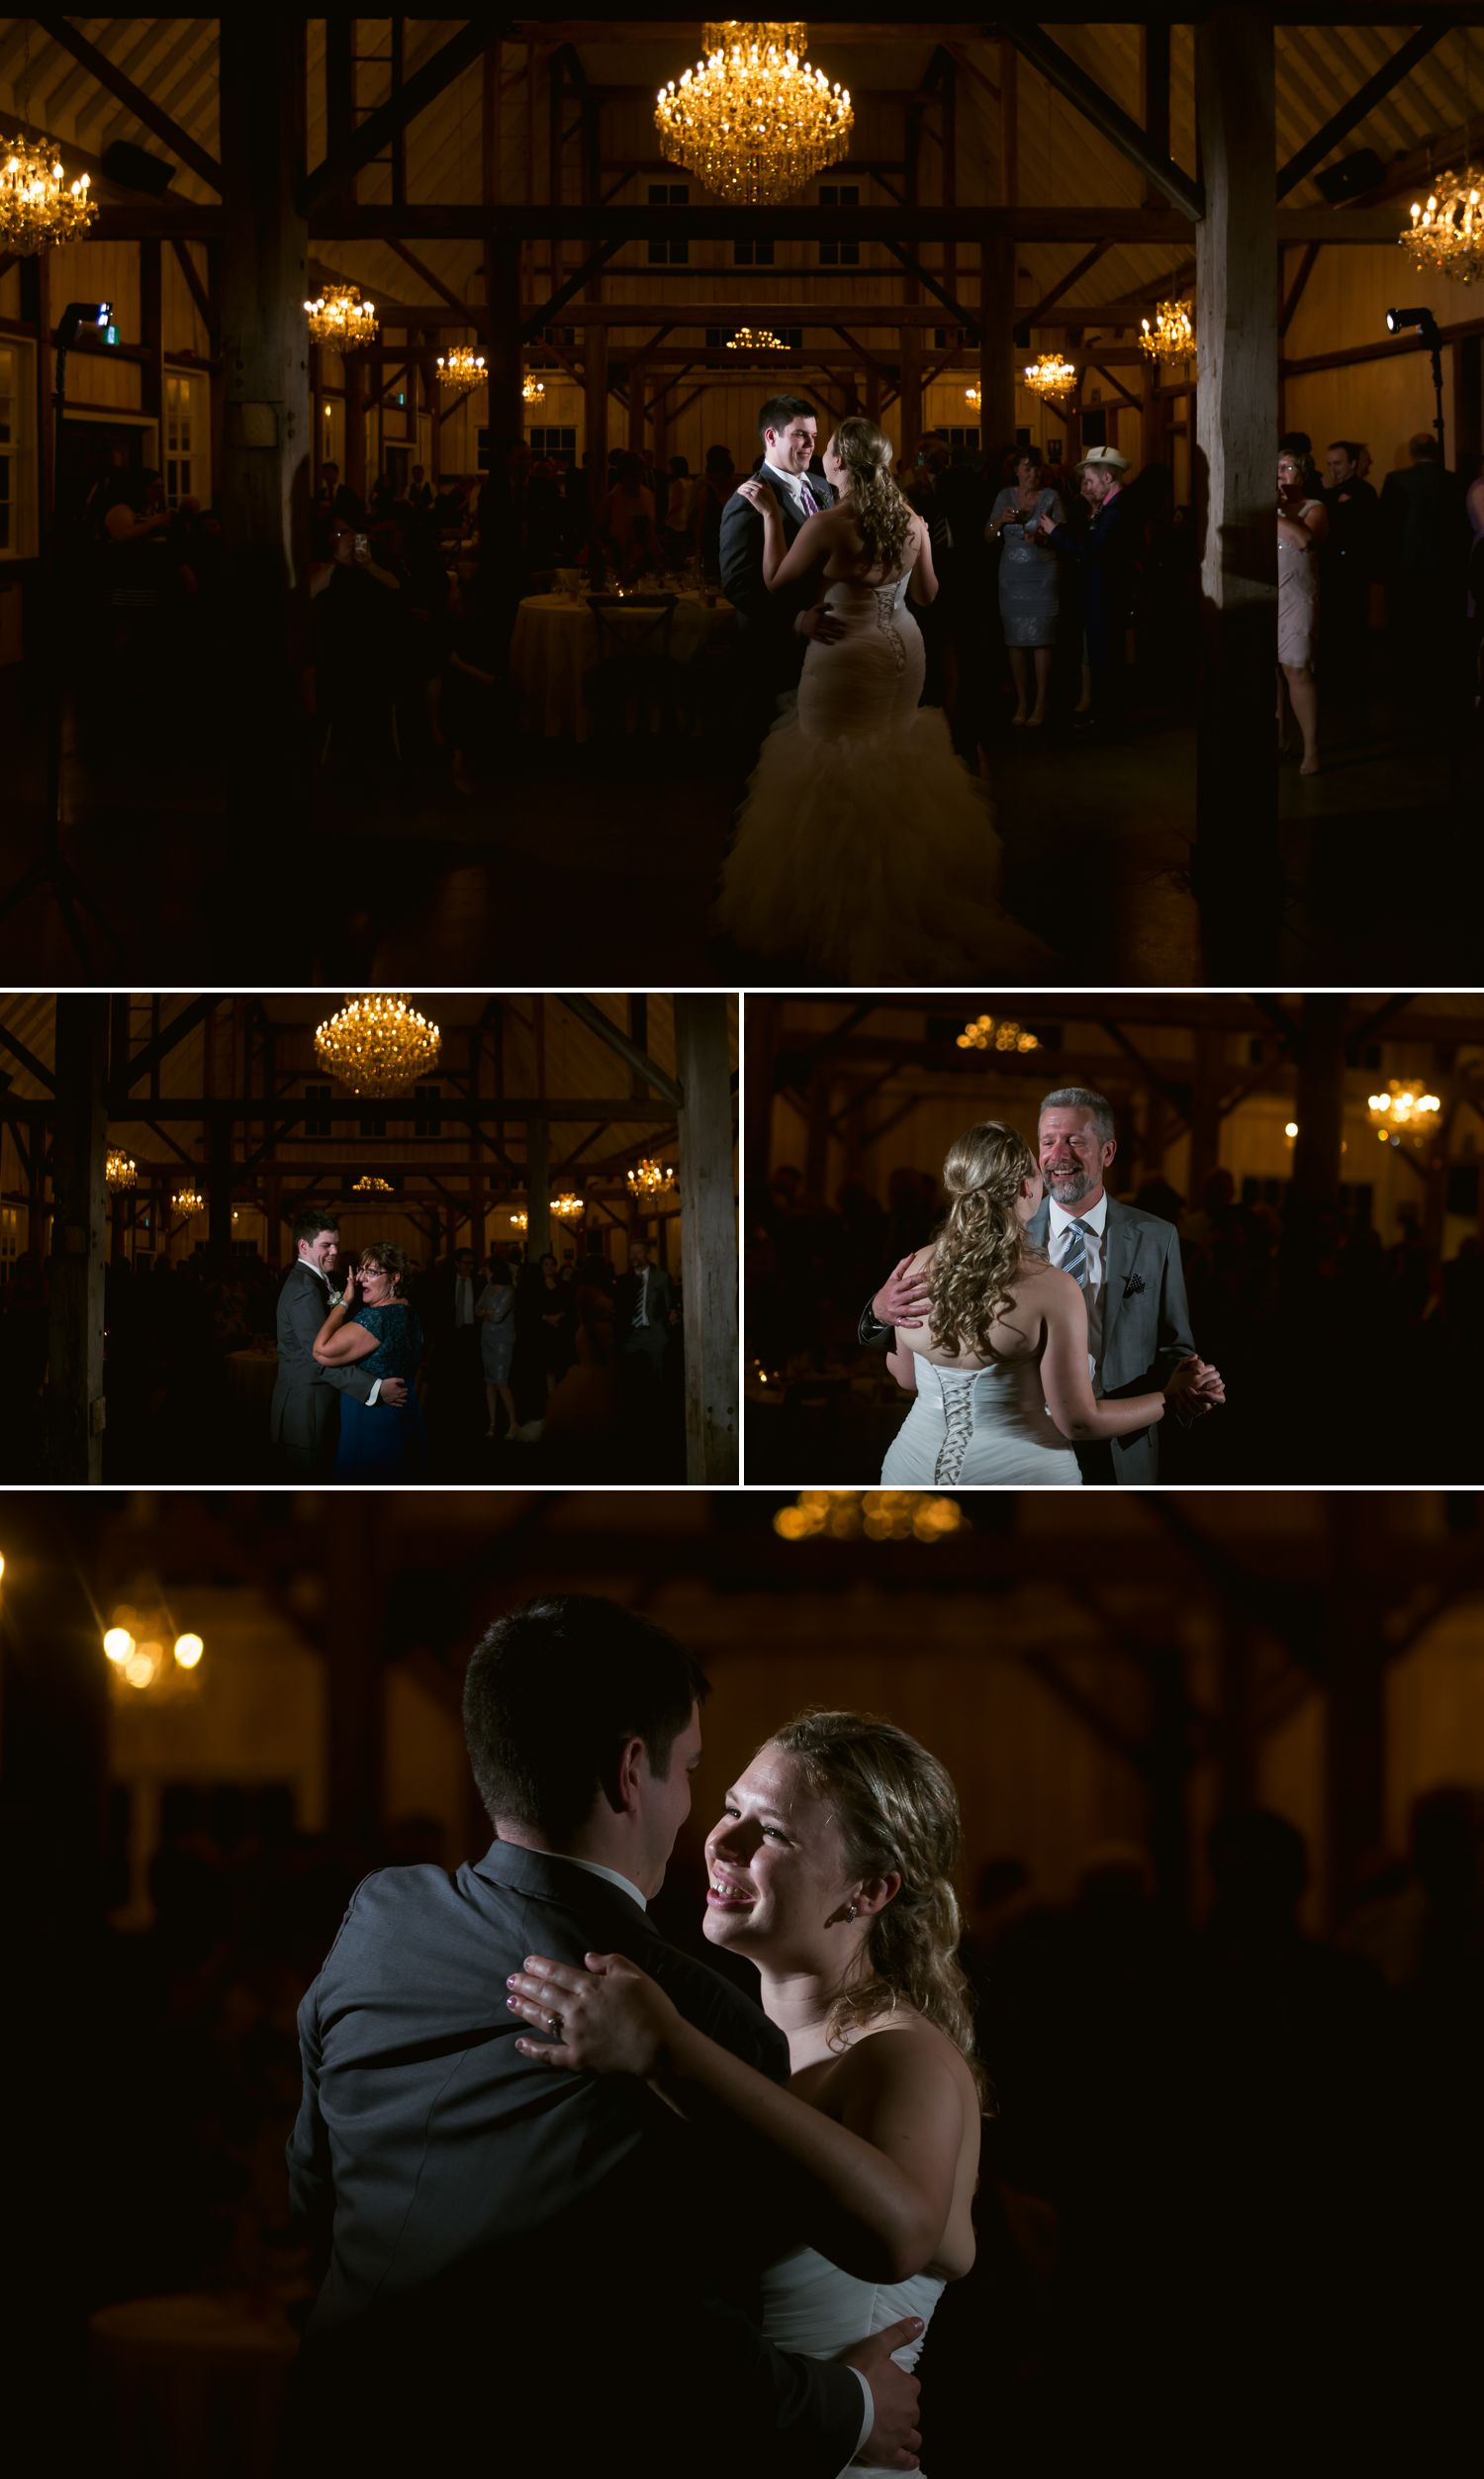 The bride and groom during their first dances together inside the Stonefields Loft